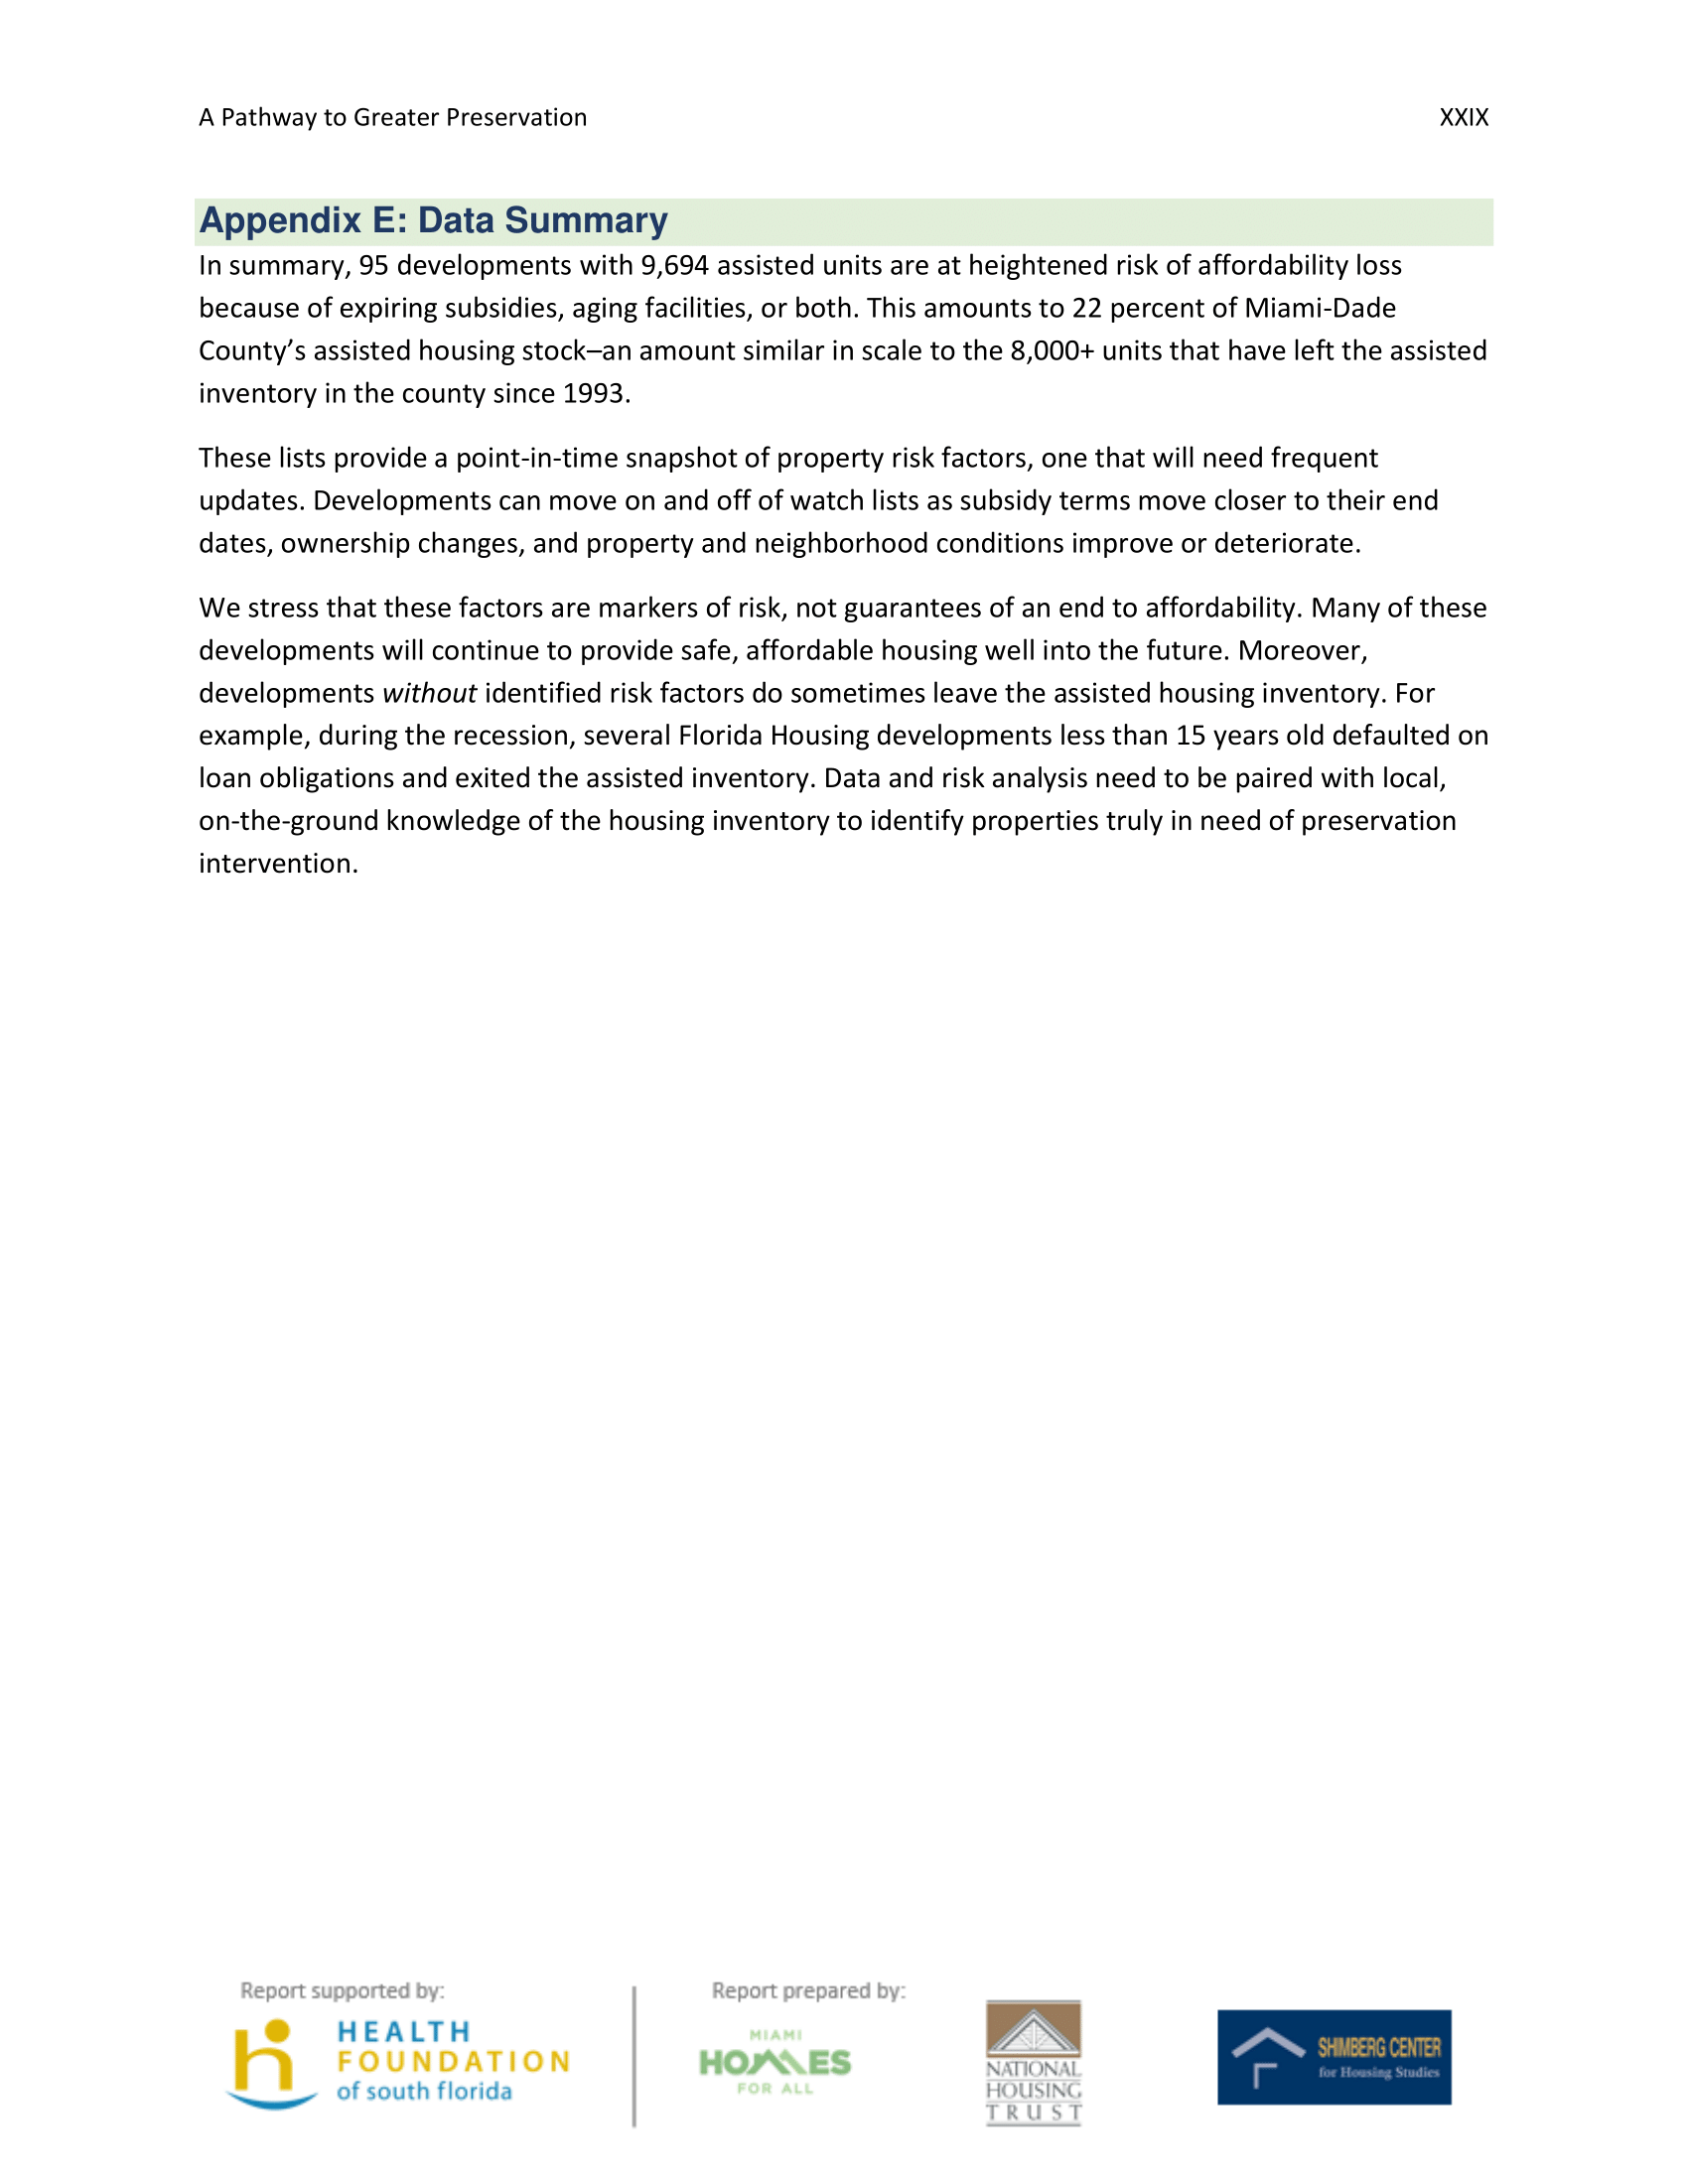 A Pathway to Greater Preservation - February 2018-75.png